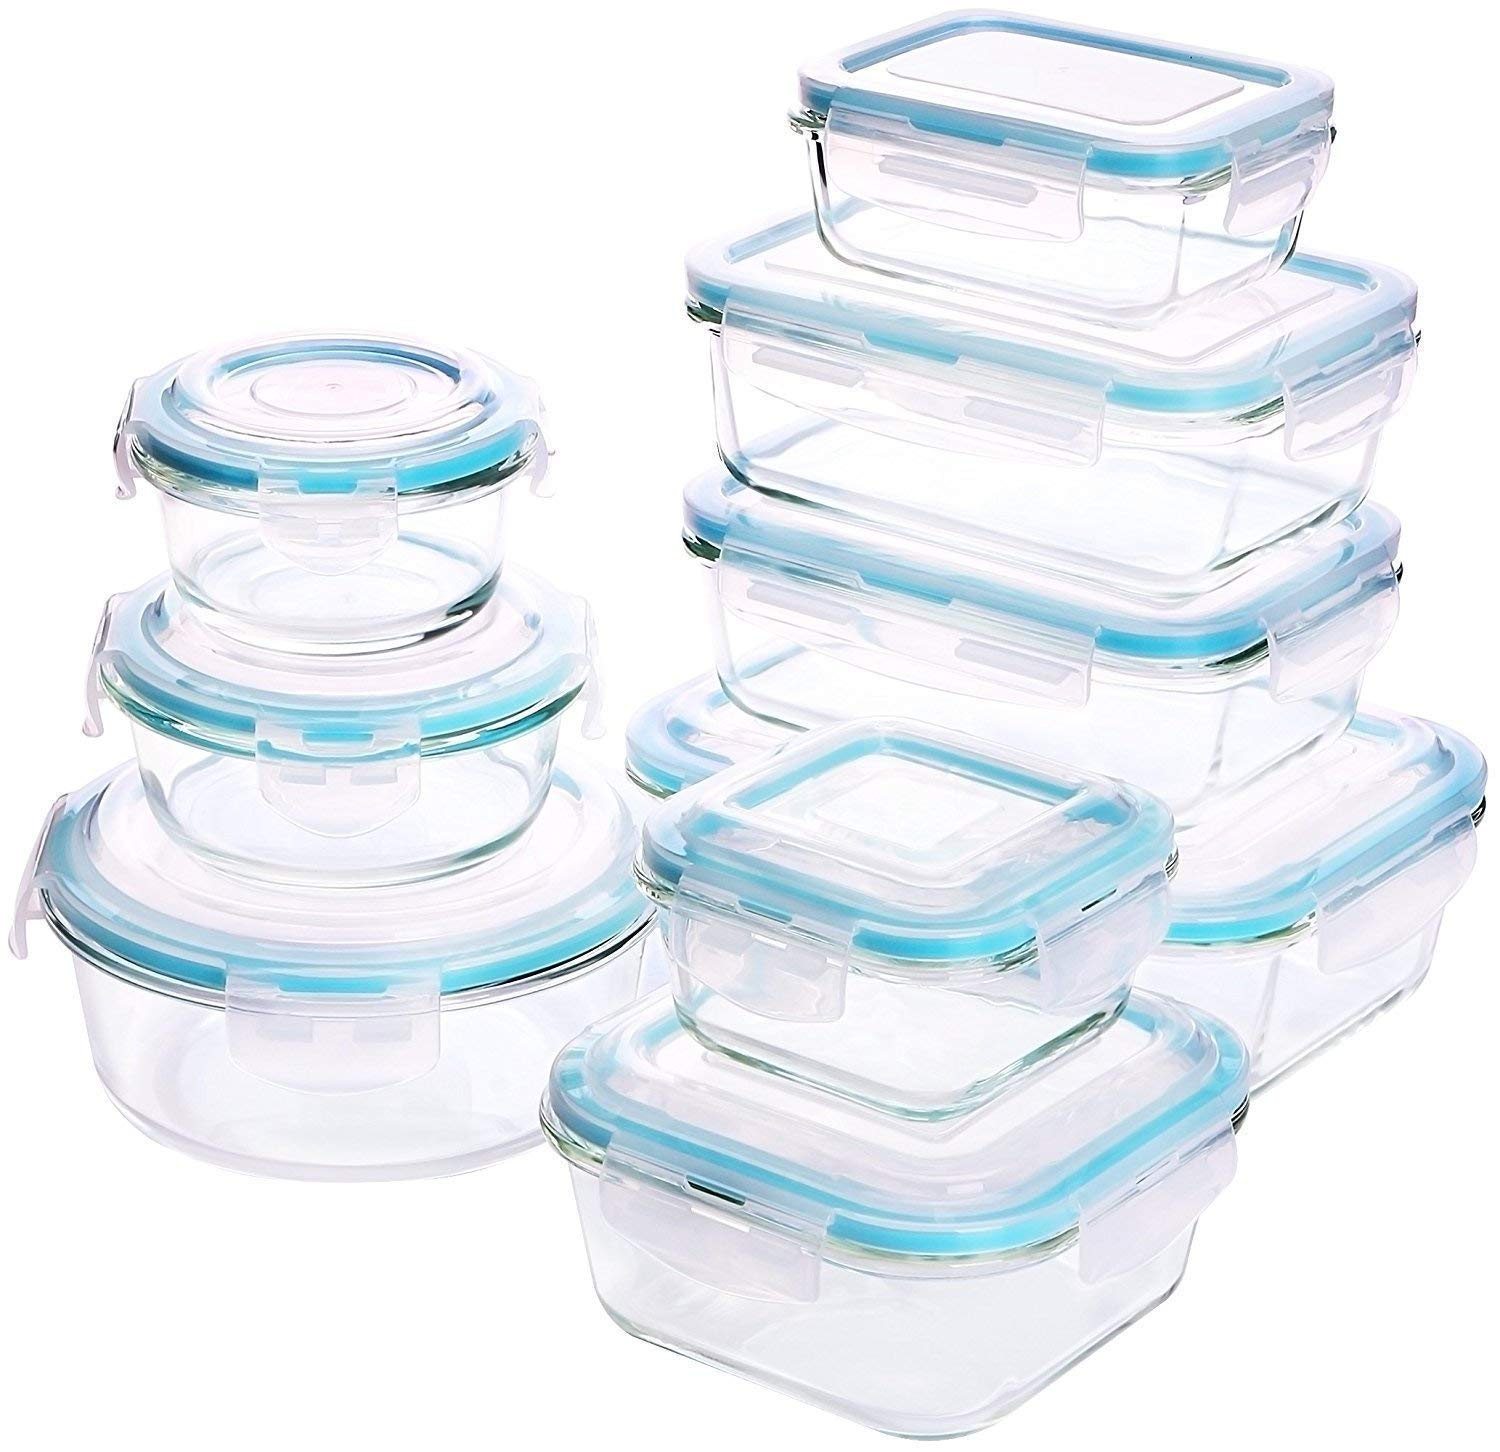 Glass Food Storage Container Set - 18 Pieces (9 containers+9 lids) Transparent Lids - BPA Free - For Home Kitchen or Restaurant - by Utopia Kitchen UK0203